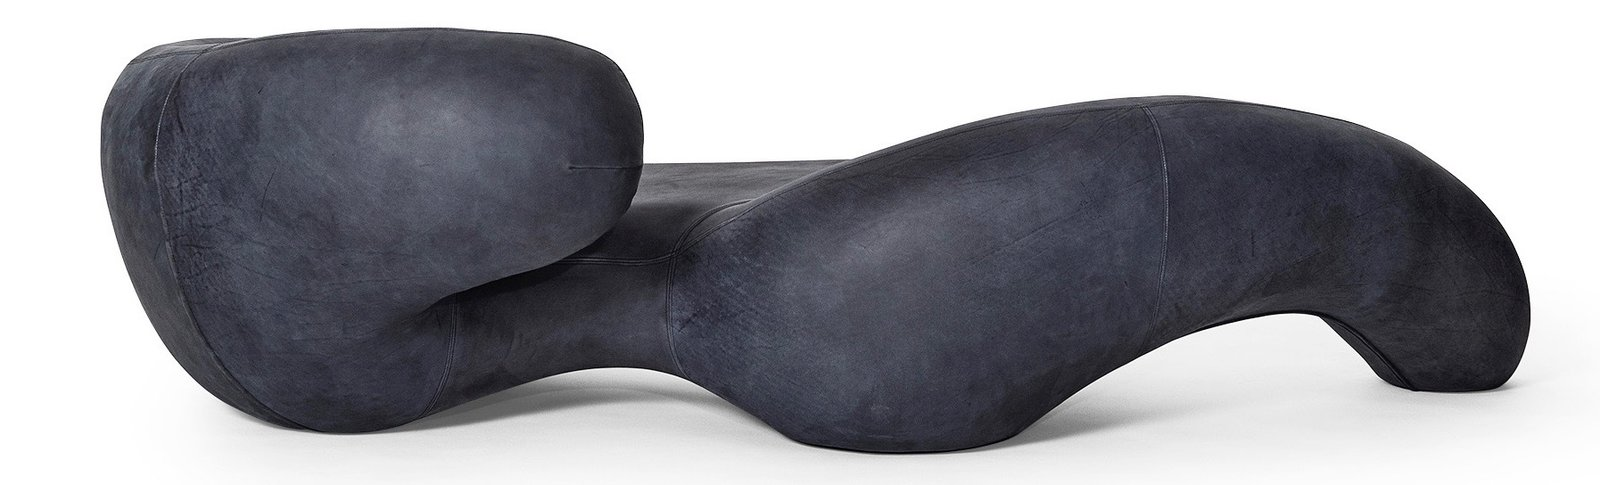 Living Room and Chair Rich Mnisi's sinuous chaise lounge is wrapped in  navy-colored leather.  Photo 17 of 25 in Meet the Dwell 24: Two Dozen Up-and-Coming Designers to Watch in 2018